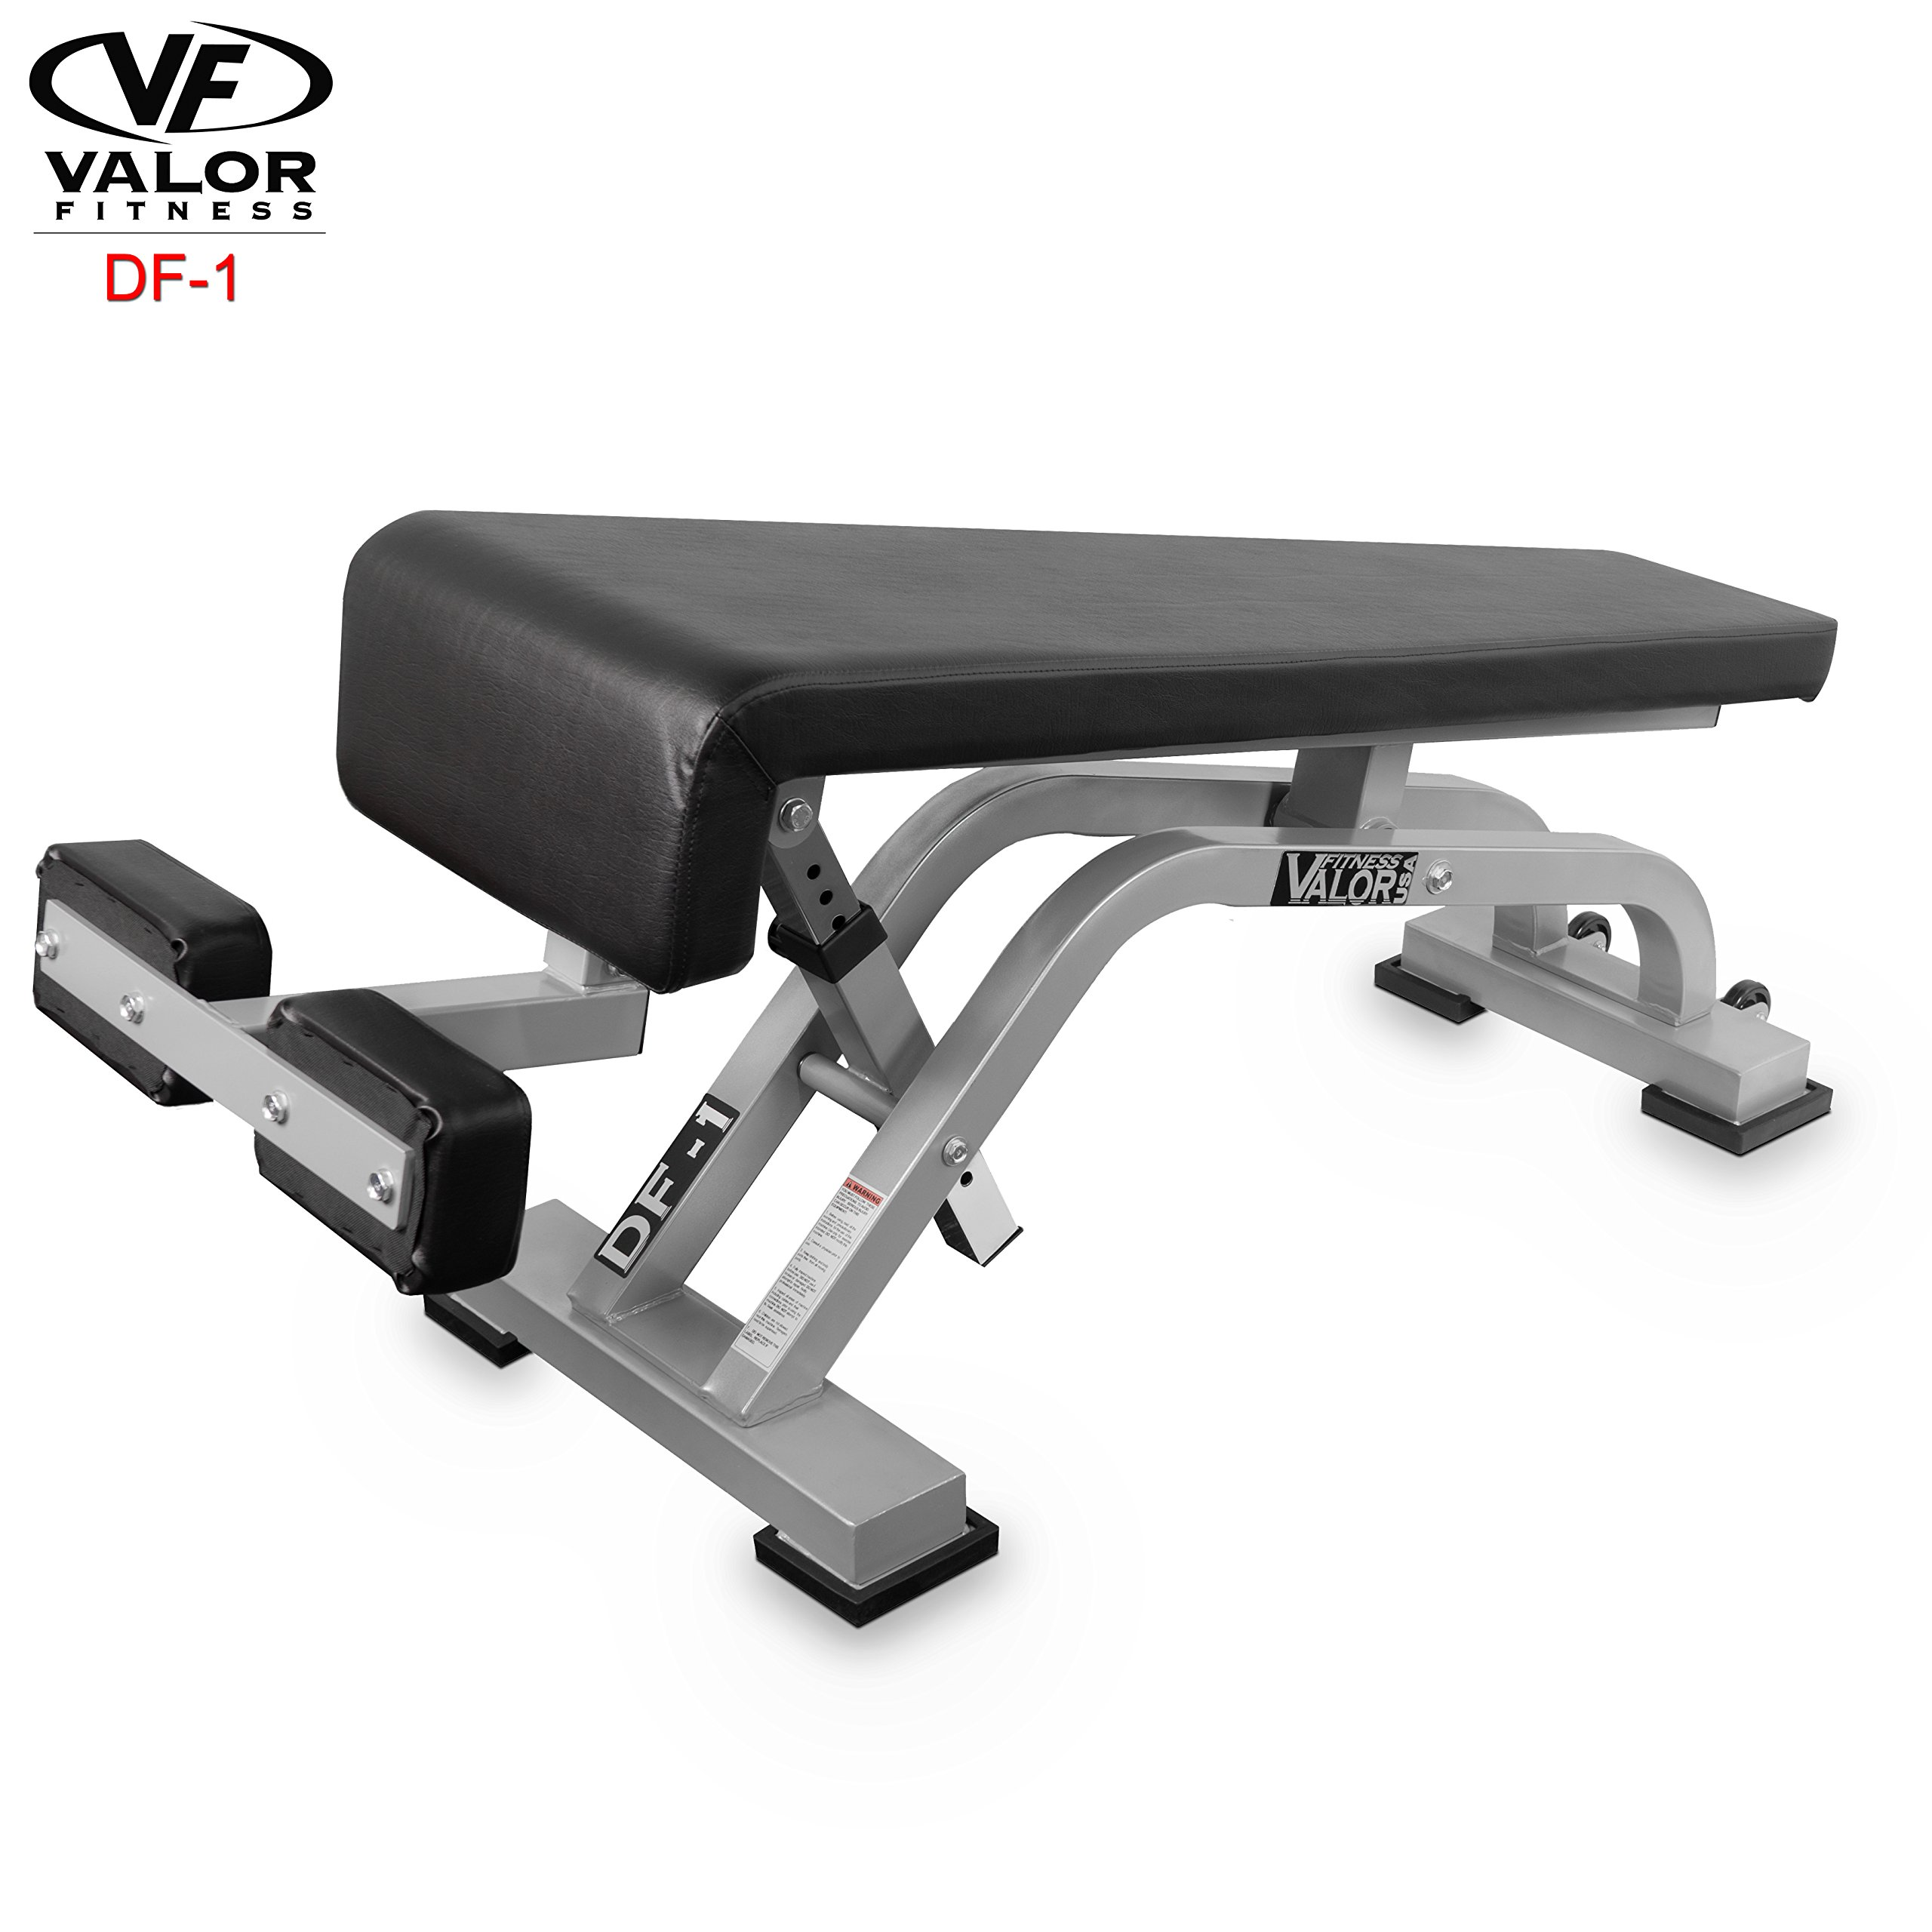 Valor Fitness DF-1 Decline/Flat Bench by Valor Fitness